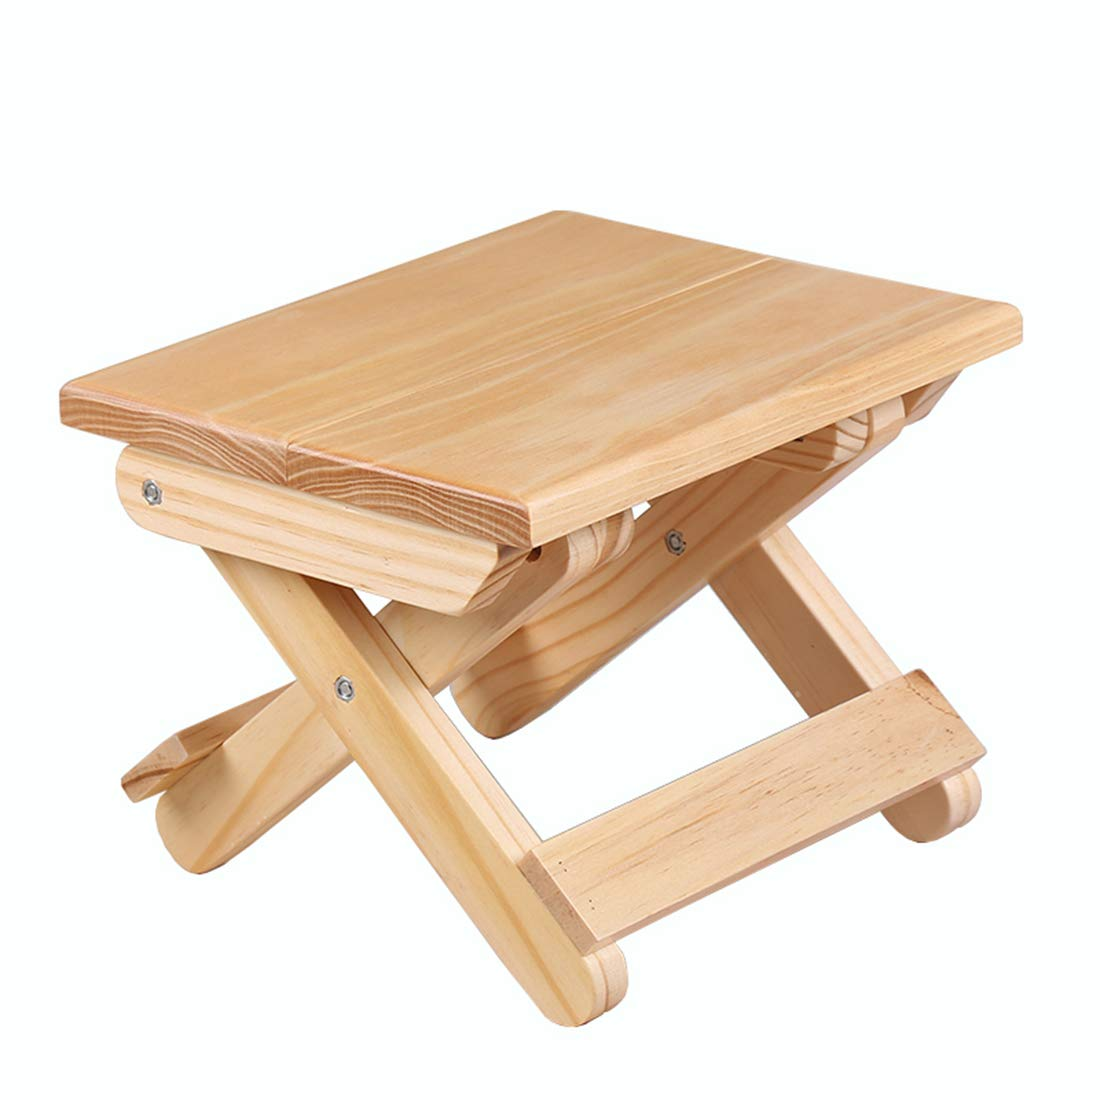 Garwarm Children's Wood Folding Step Stool, Portable Simple Household Stool Small Bench, Game Stool or Outdoor Fishing Stool Used for Picnic Fishing Bathroom Garden, 7 Height 7 Height